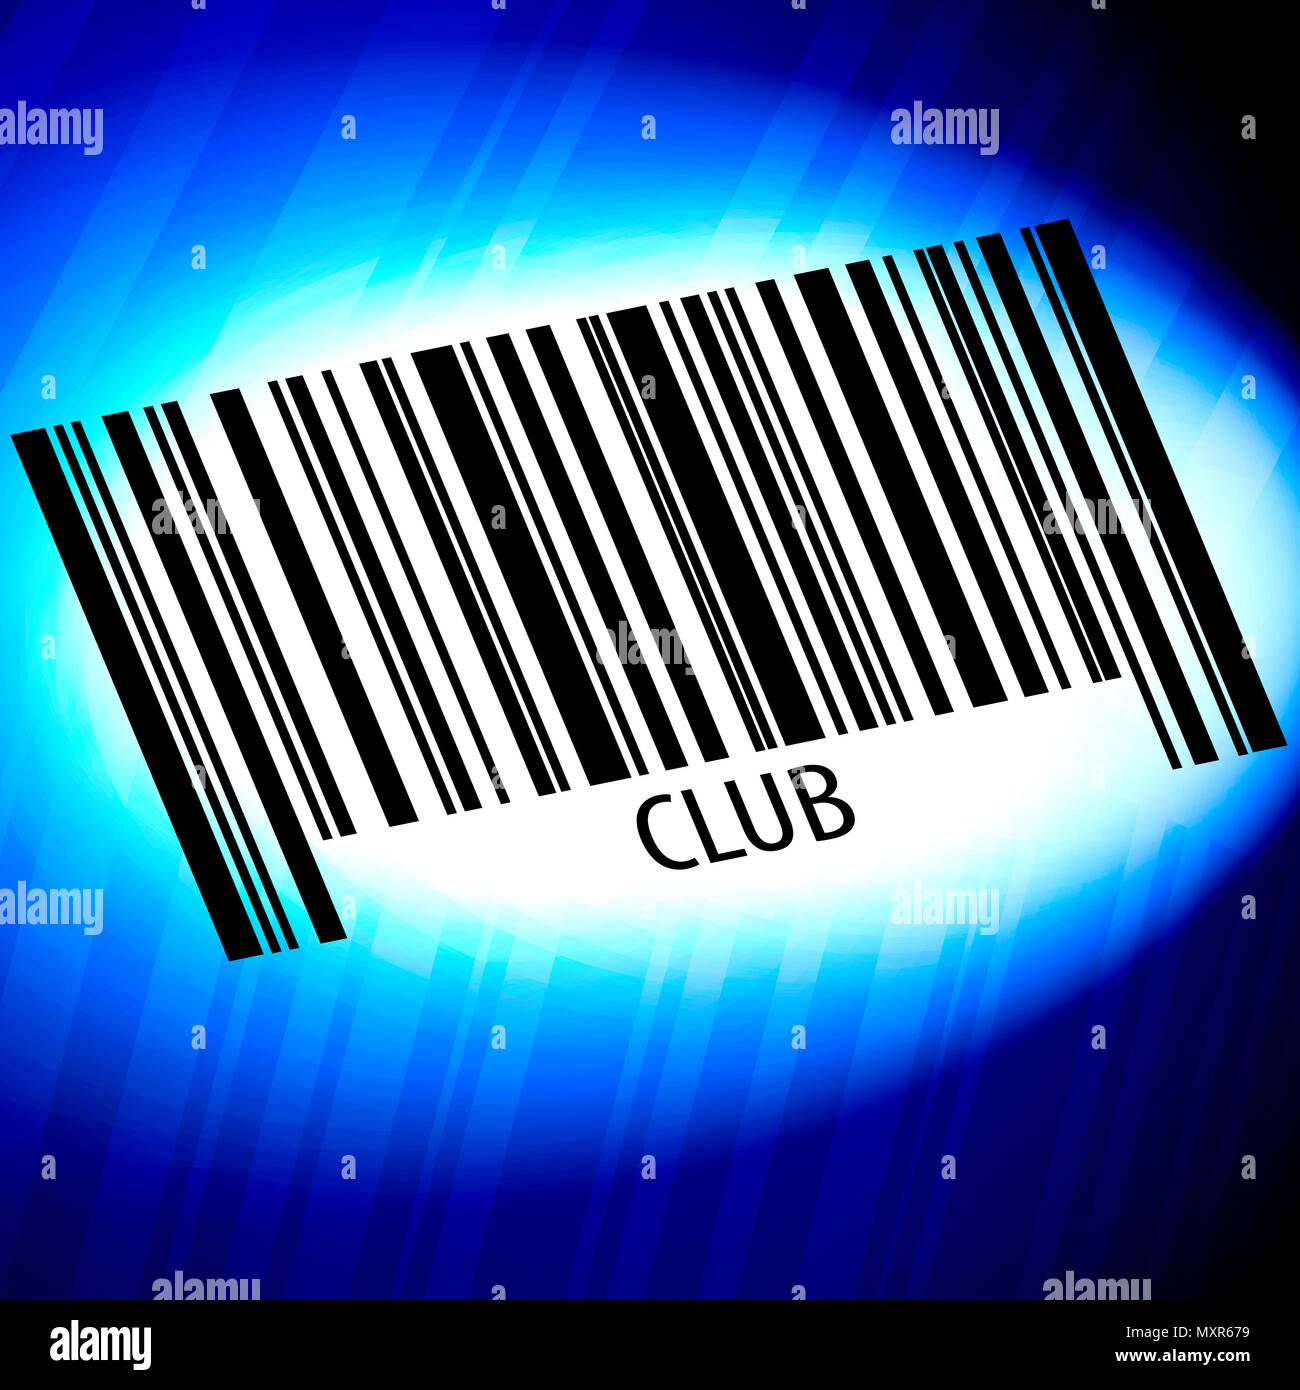 Club - barcode with blue Background - Stock Image